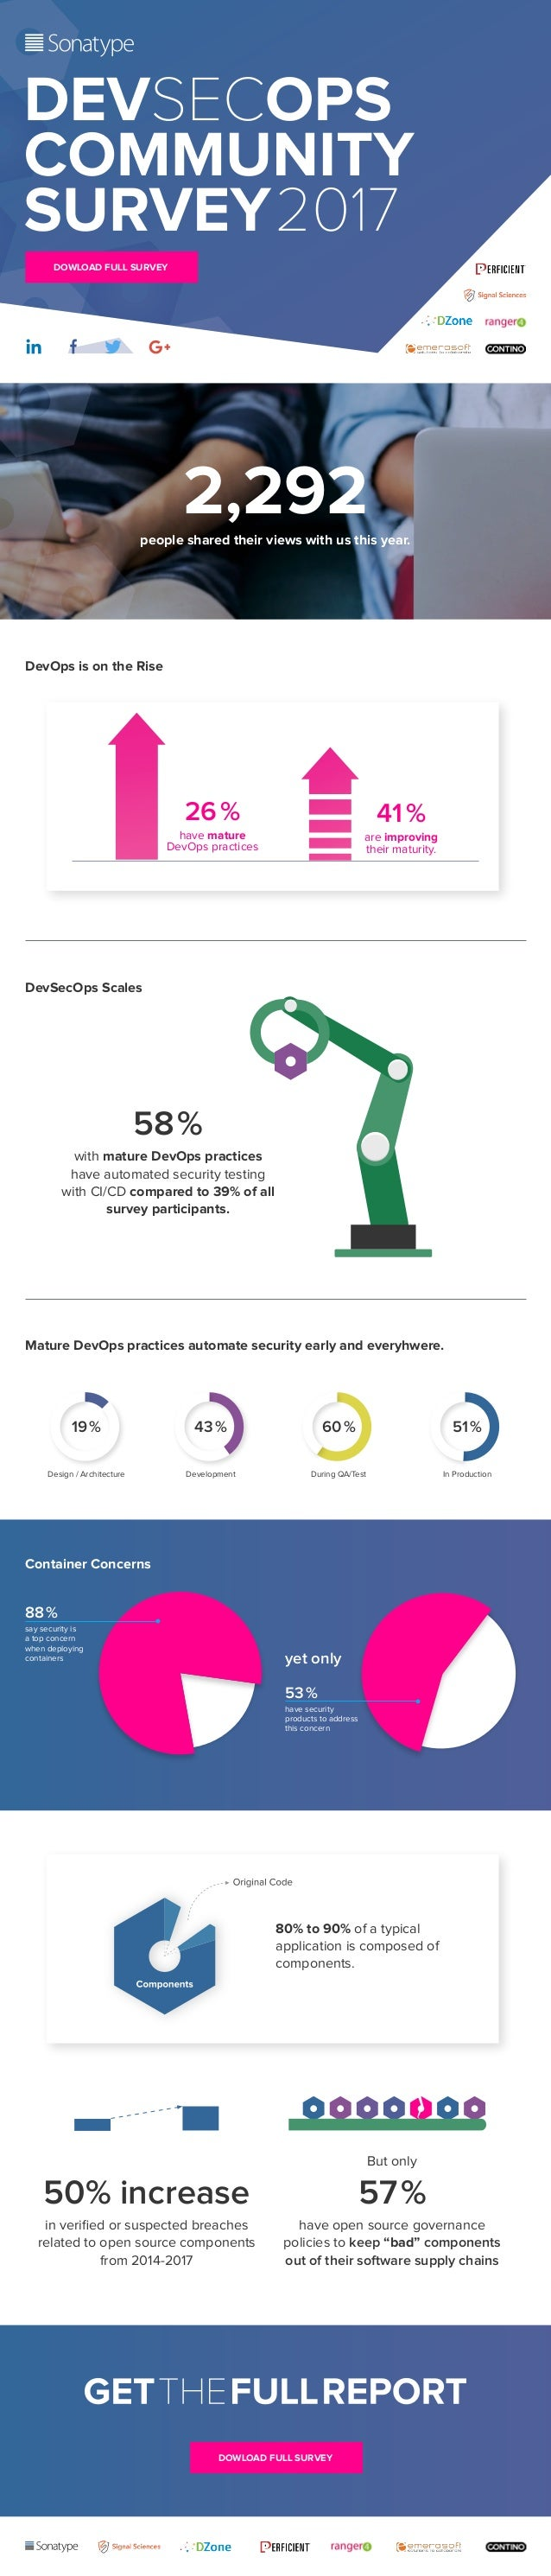 DOWLOAD FULL SURVEY DOWLOAD FULL SURVEY 41% are improving their maturity. 26% have mature DevOps practices 2,292people s...